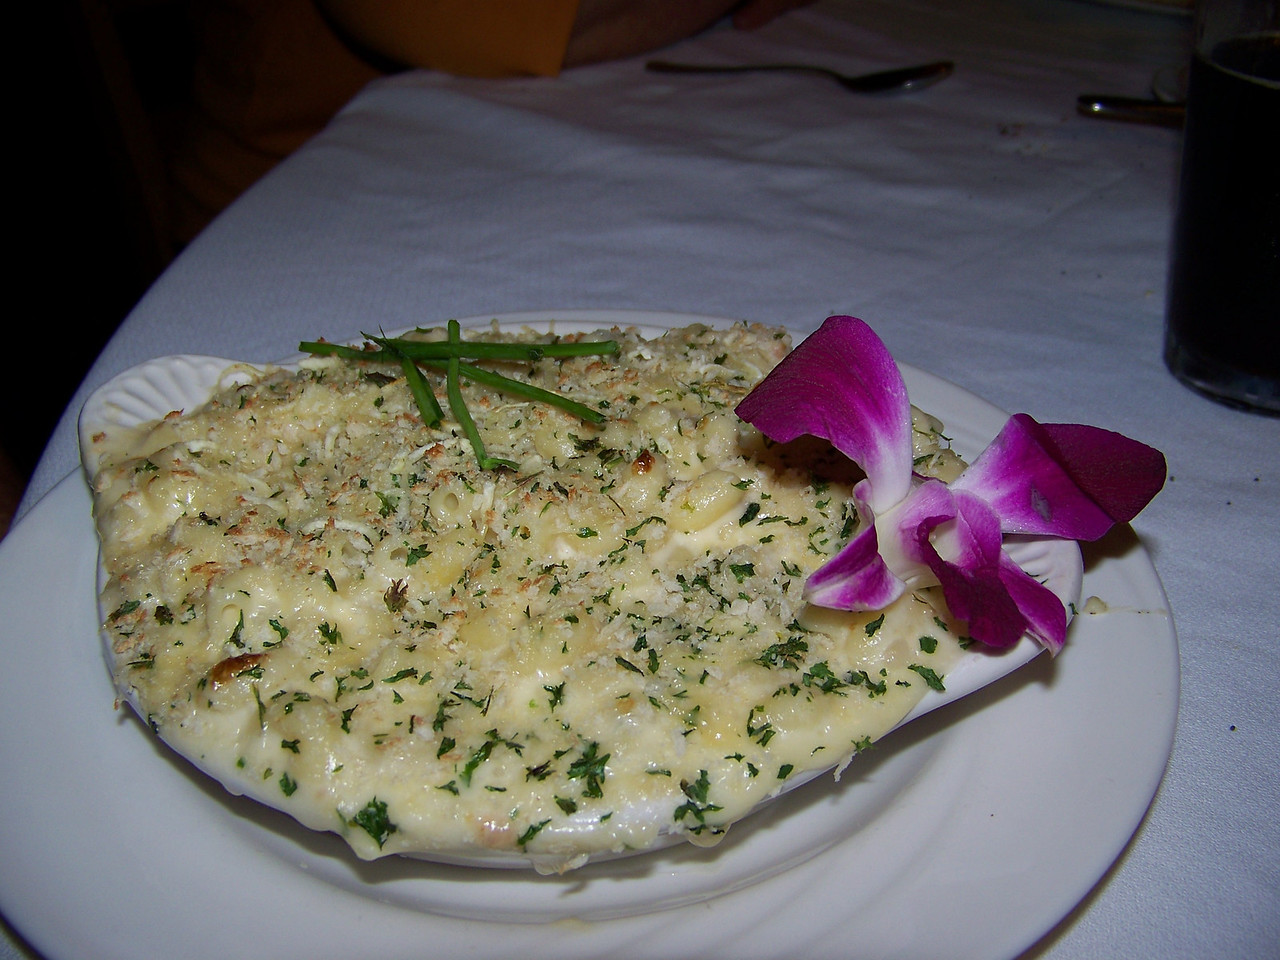 Mark decided on the crab macaroni and cheese for dinner, which came garnished with an orchid.  He let me sample it, and boy, was it good!<br /> [Mount Rainier - Paradise Inn]